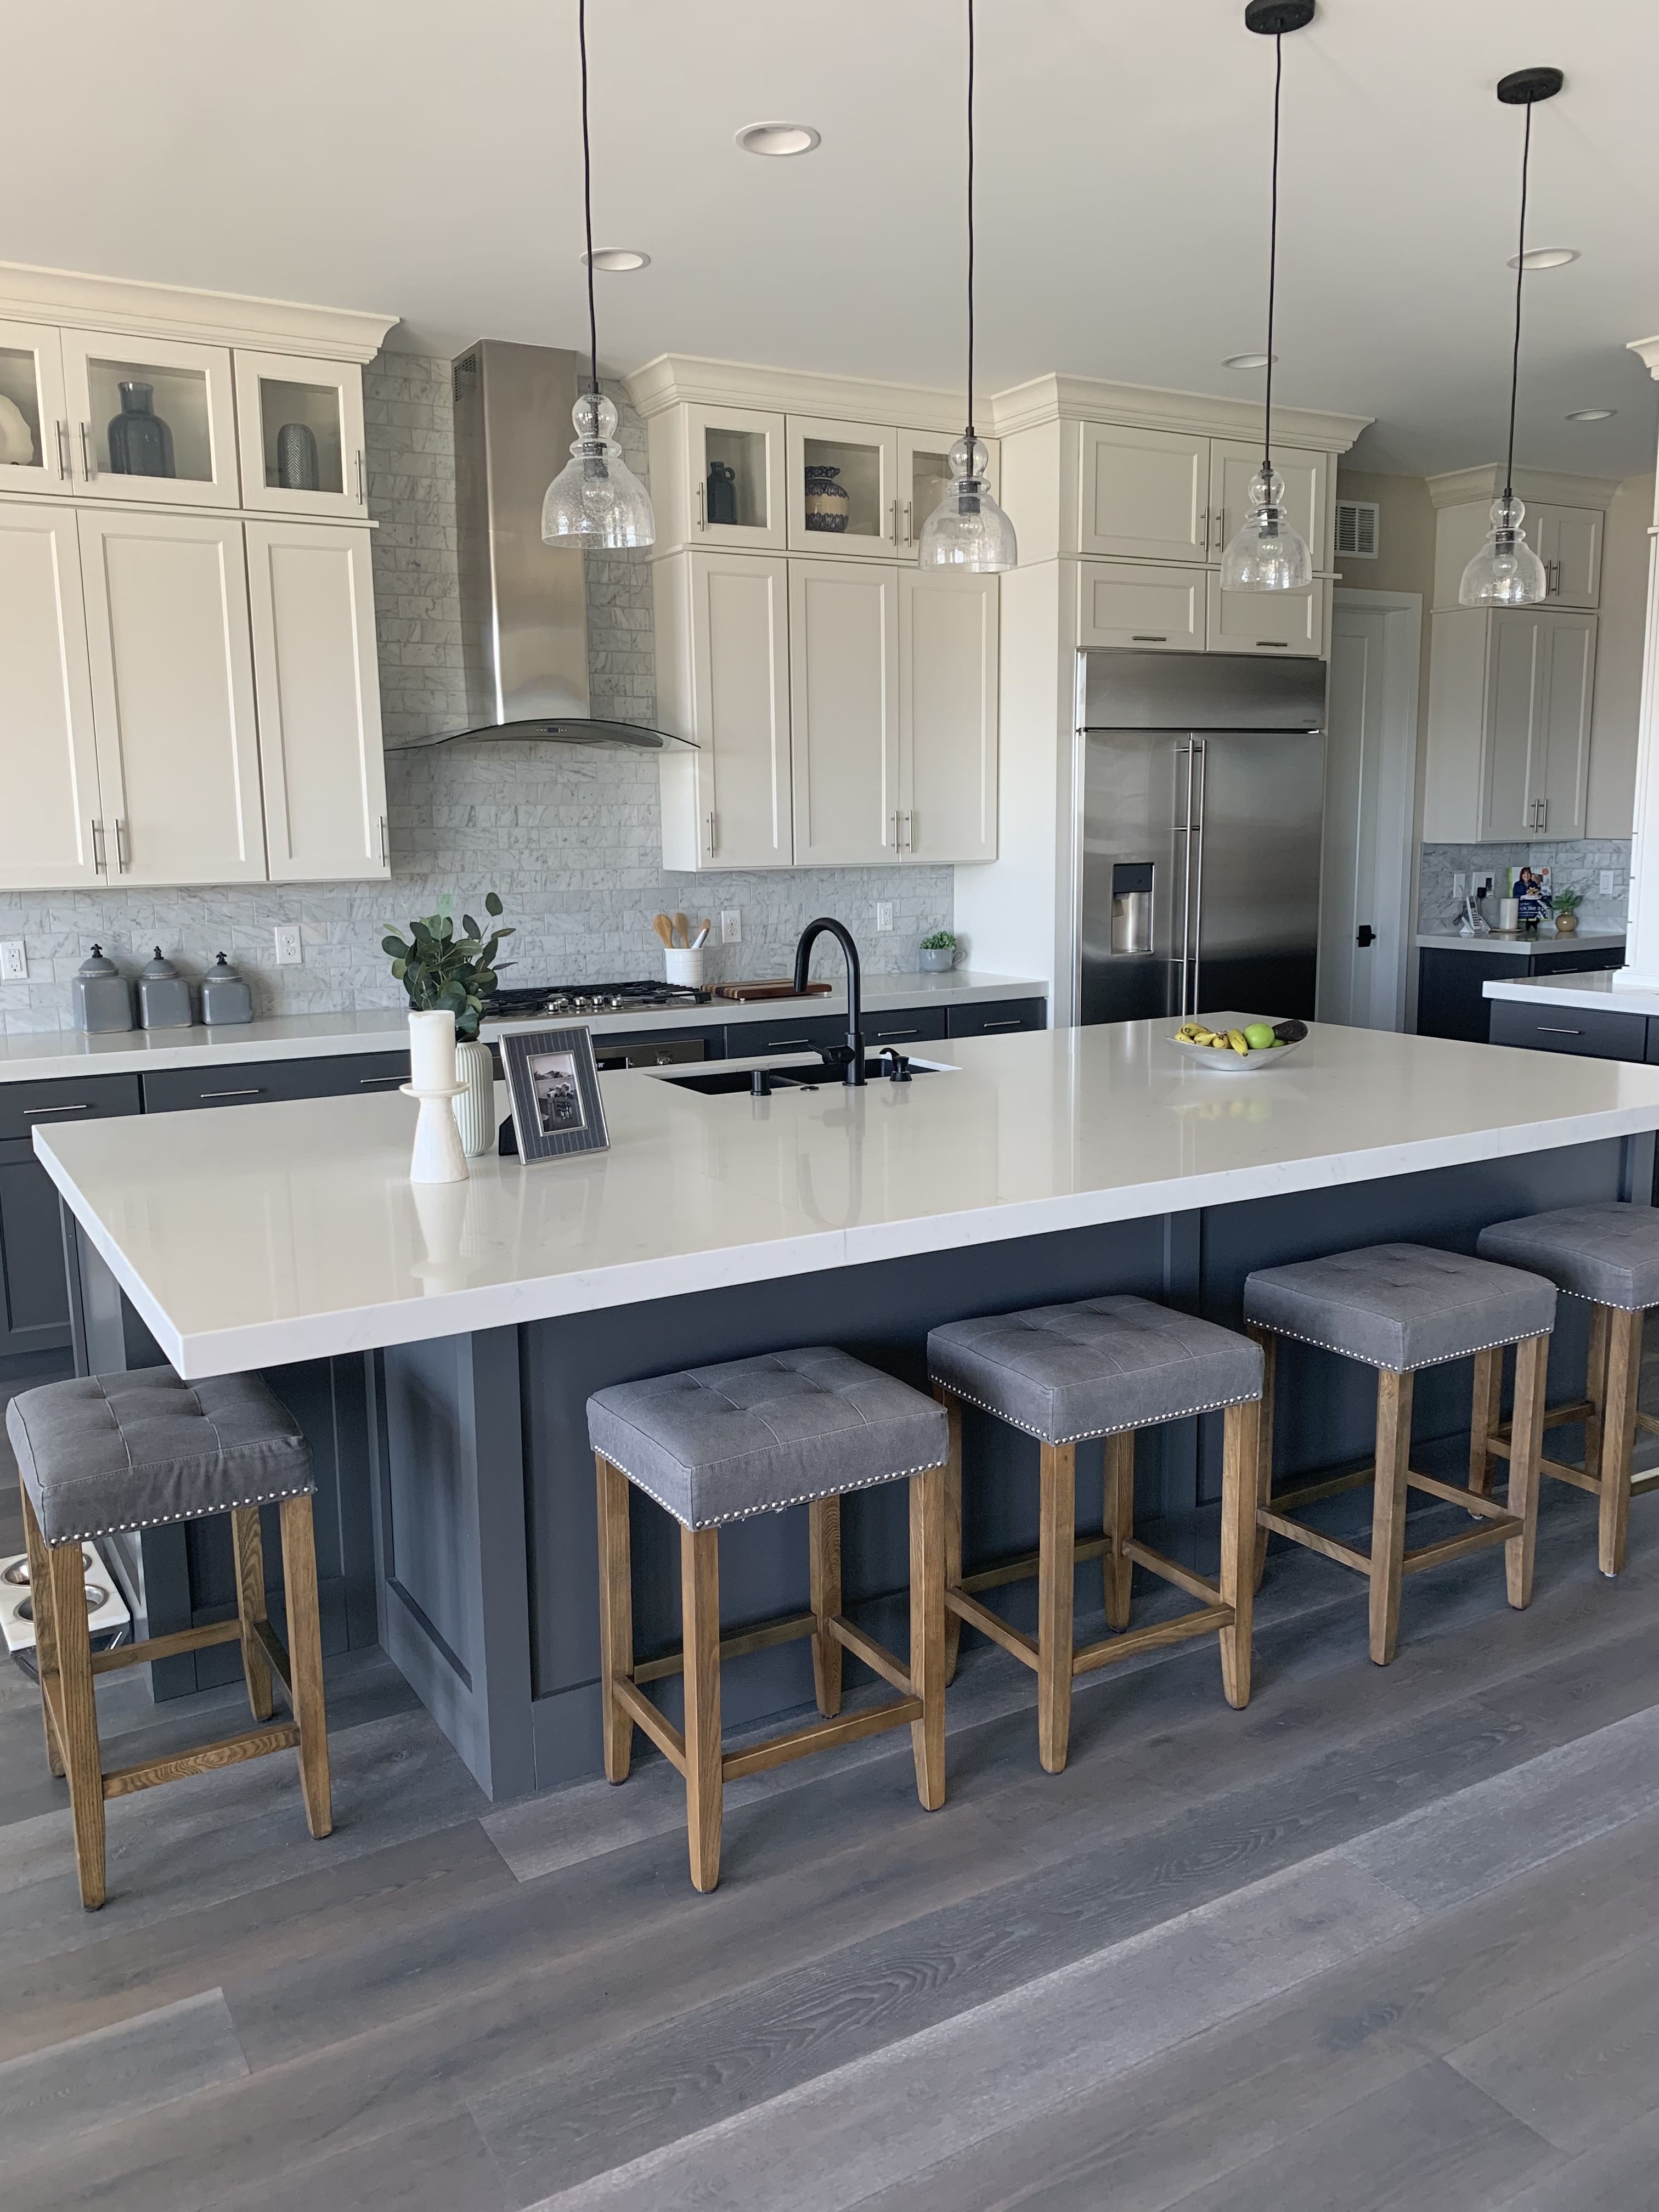 Modern Farmhouse White Upper Cabinets Dark Grey Lower And Island Black Sink An In 2020 House Design Kitchen Black Kitchen Island Open Plan Kitchen Living Room